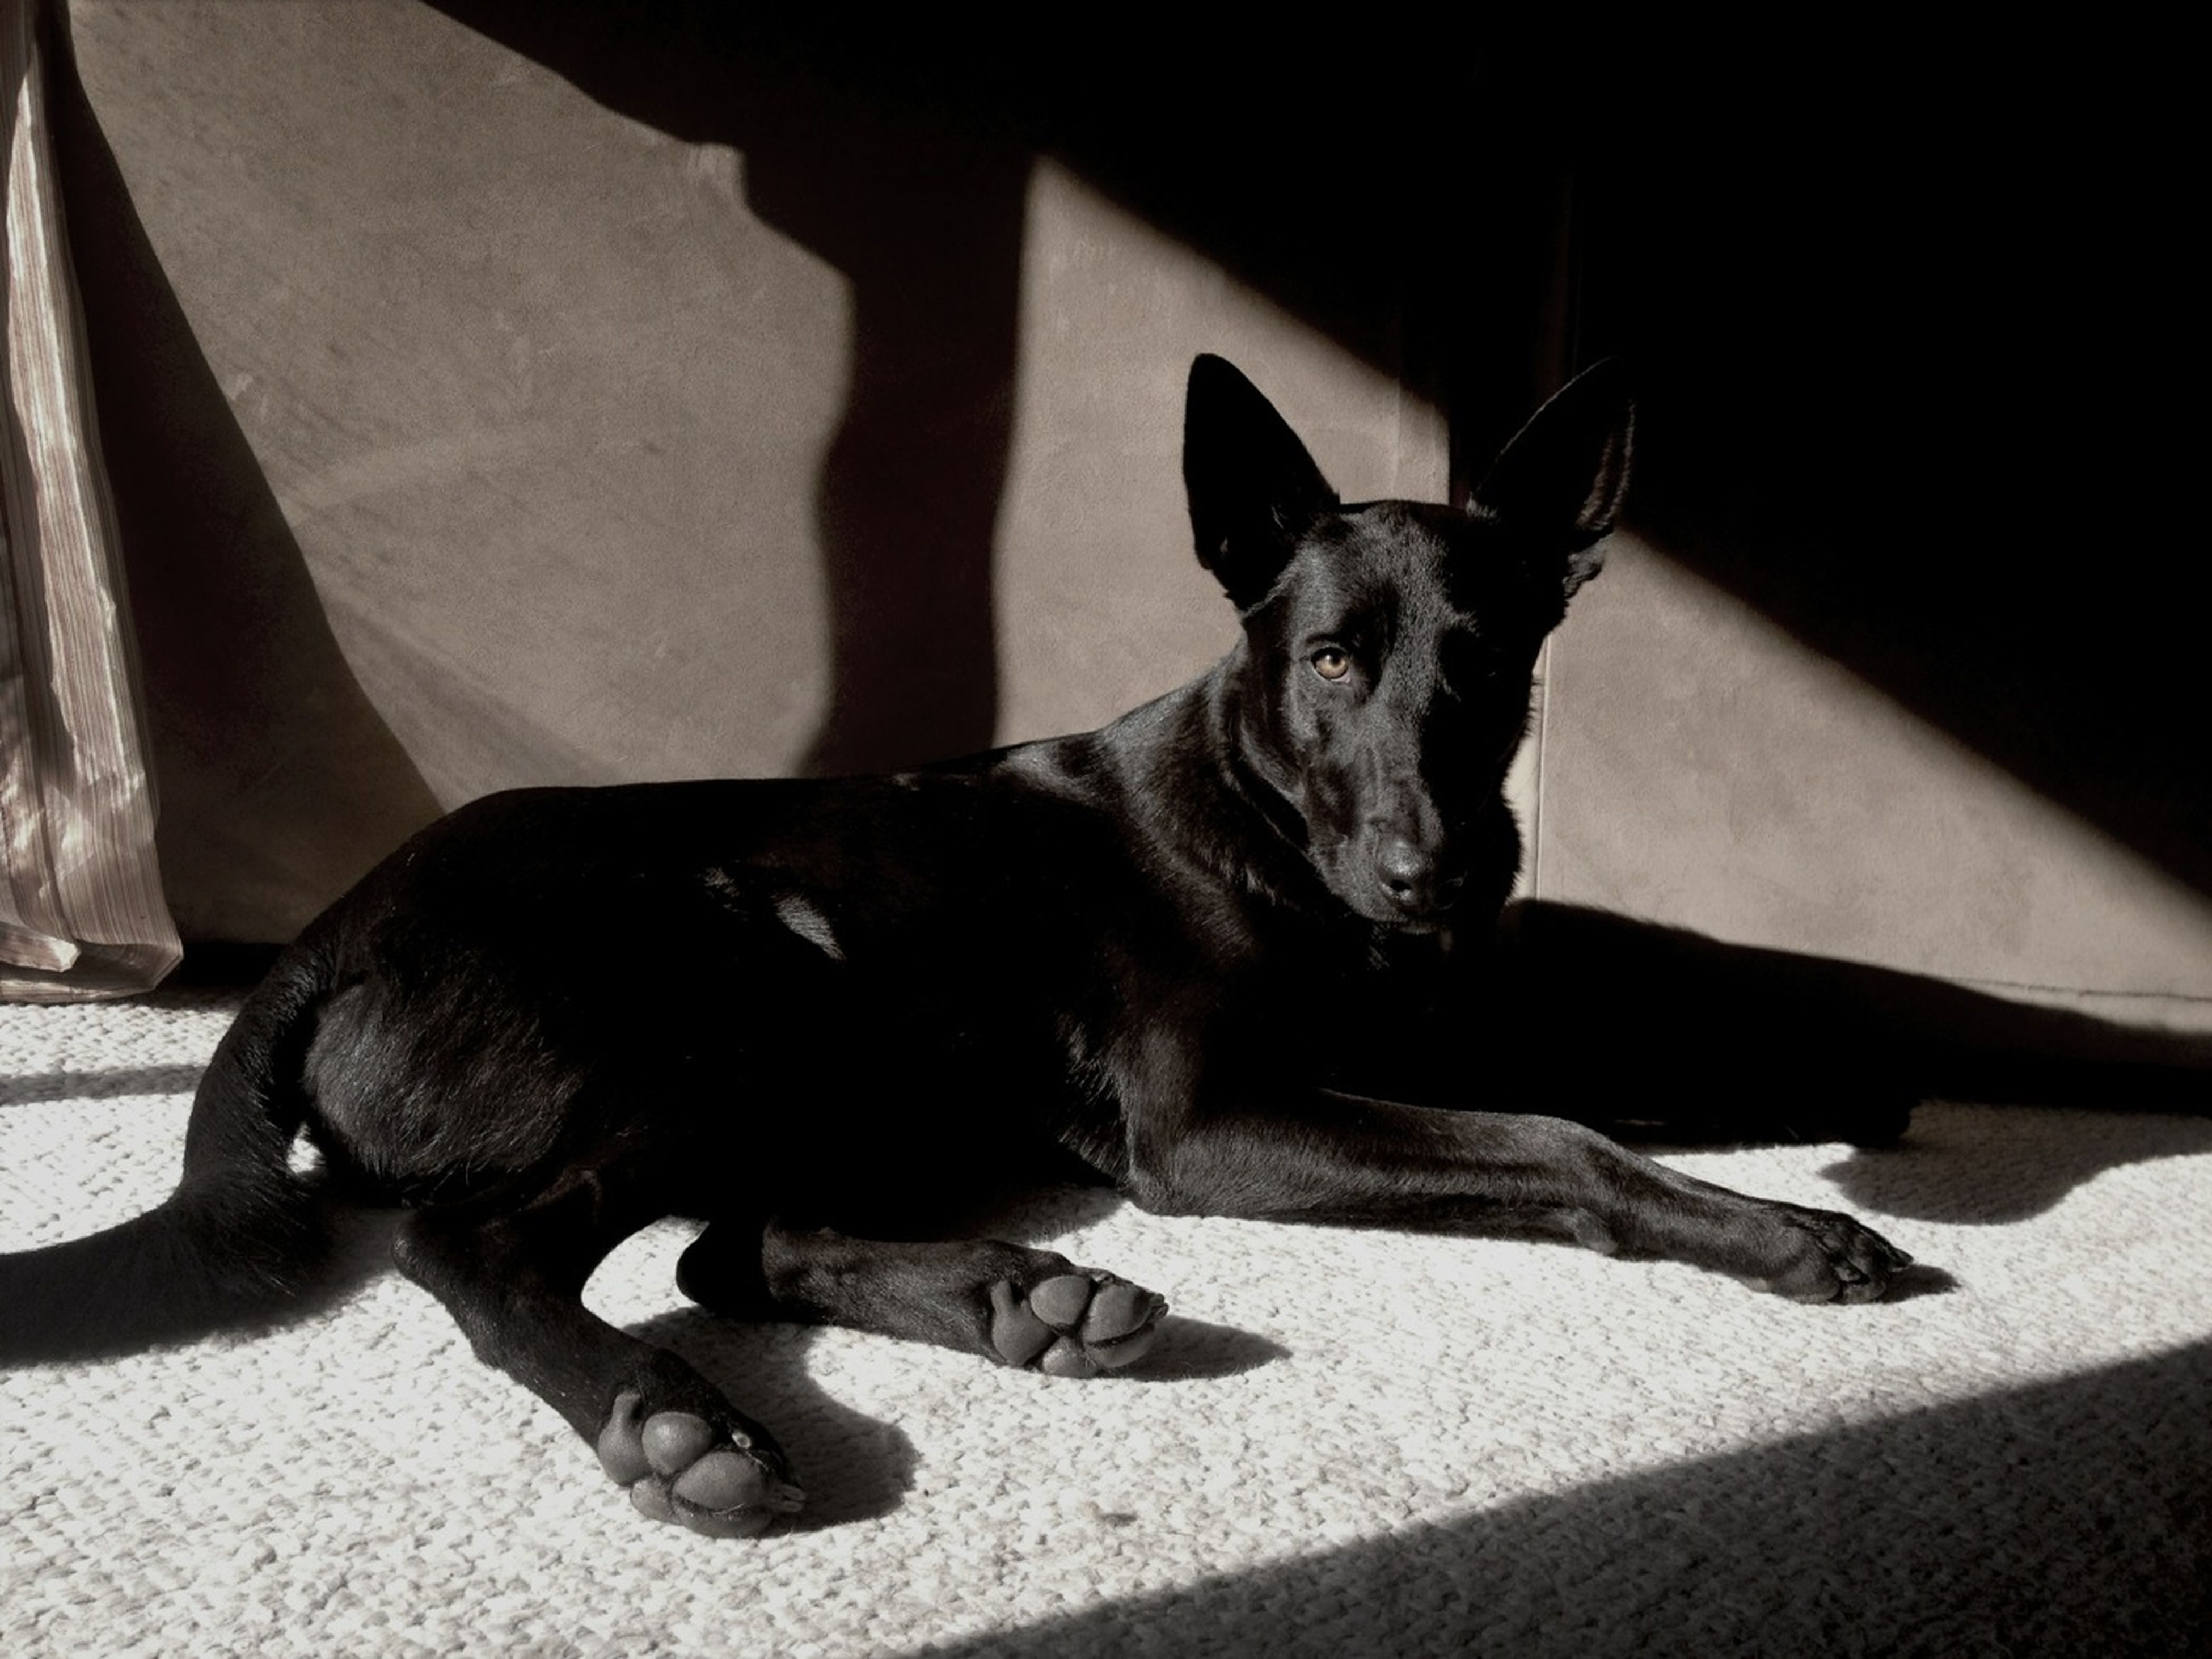 pets, animal themes, domestic animals, one animal, mammal, dog, indoors, relaxation, lying down, sitting, home interior, resting, full length, sunlight, portrait, shadow, domestic cat, looking at camera, high angle view, black color